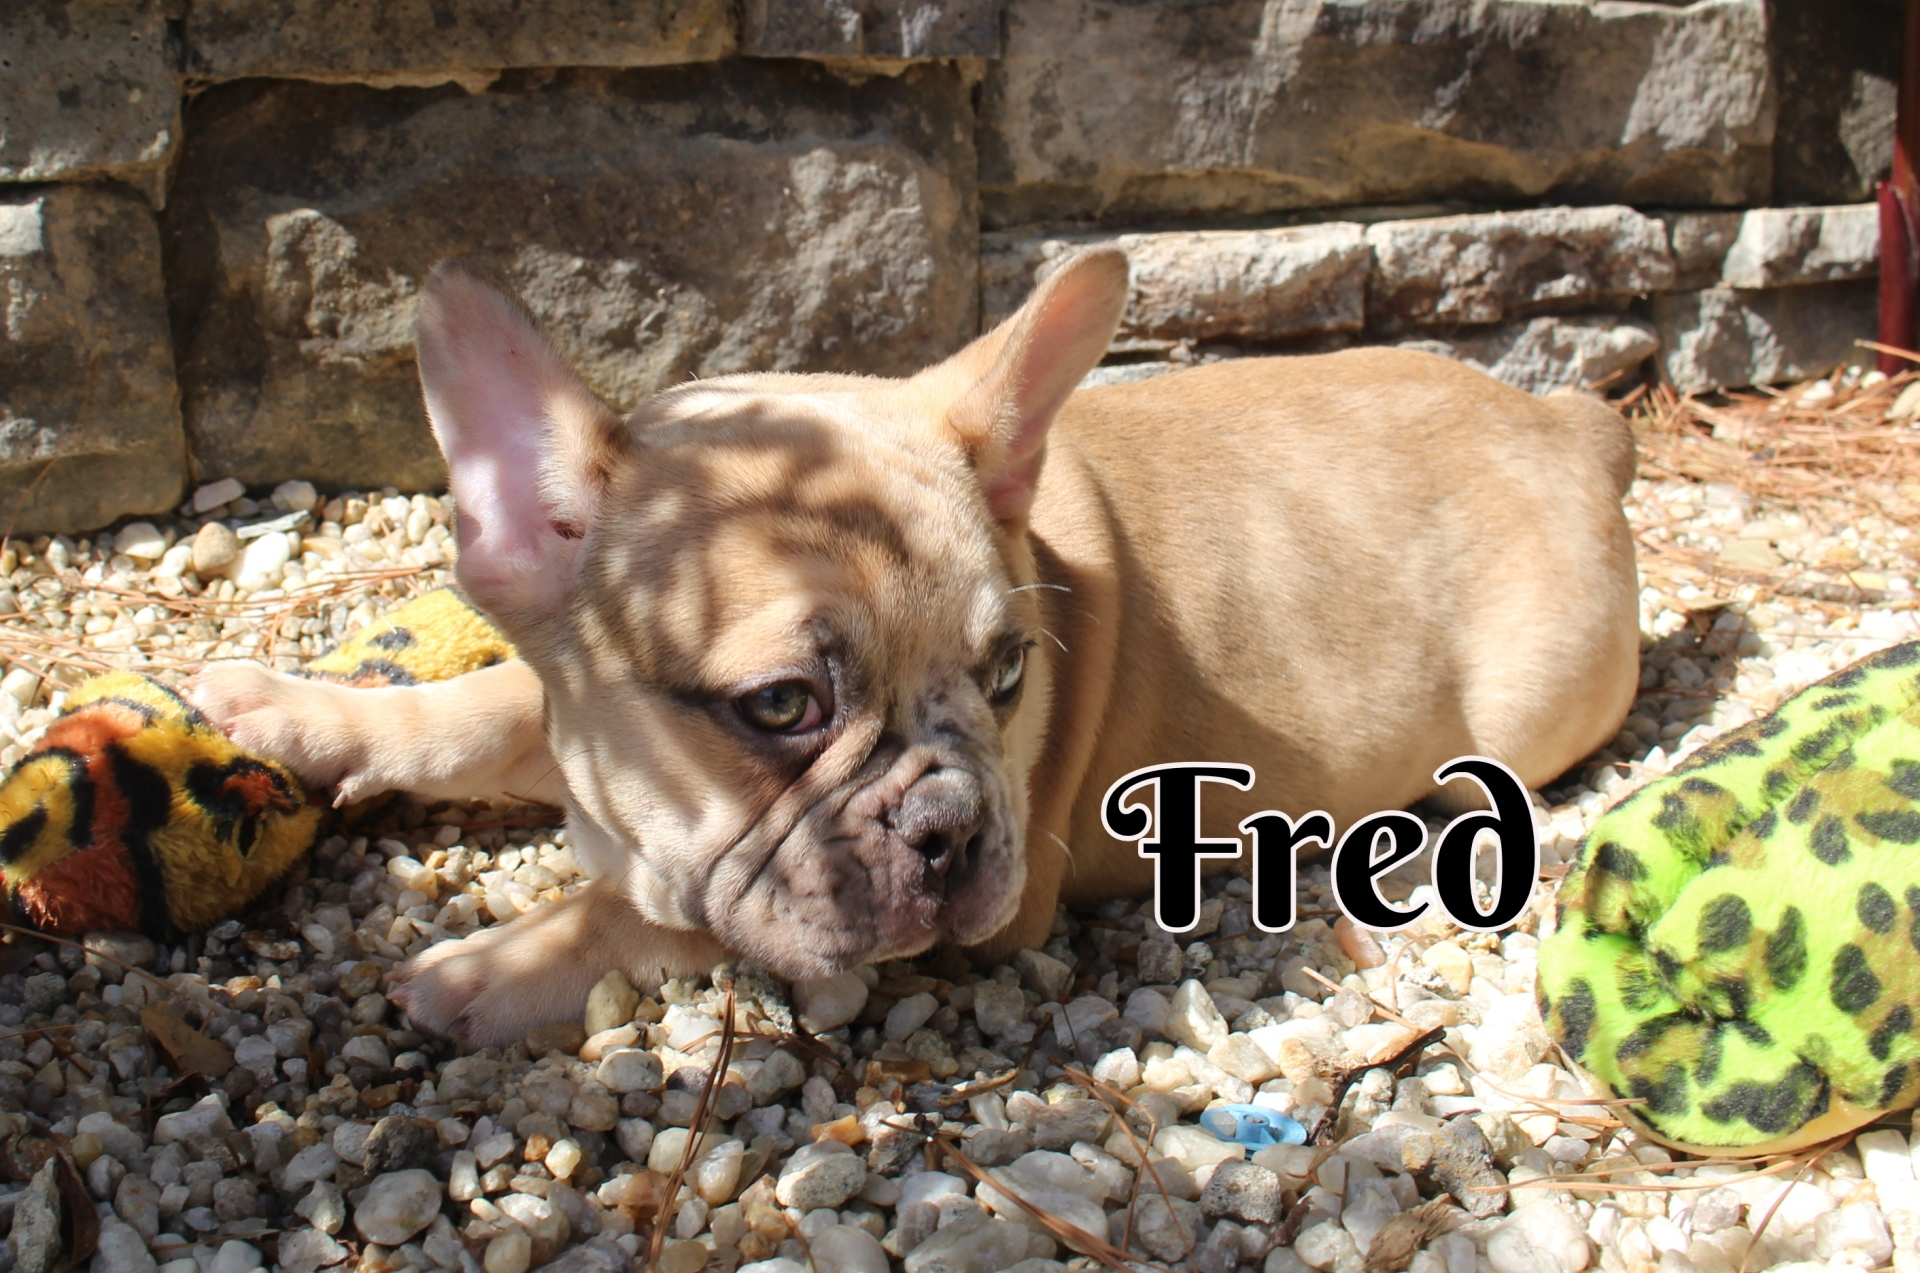 #FrenchBulldogPuppies #MerleFrenchBulldog #Frenchie #AvailablePuppies #AKCRegFrenchBulldog #SouthernTerritoryFrenchies